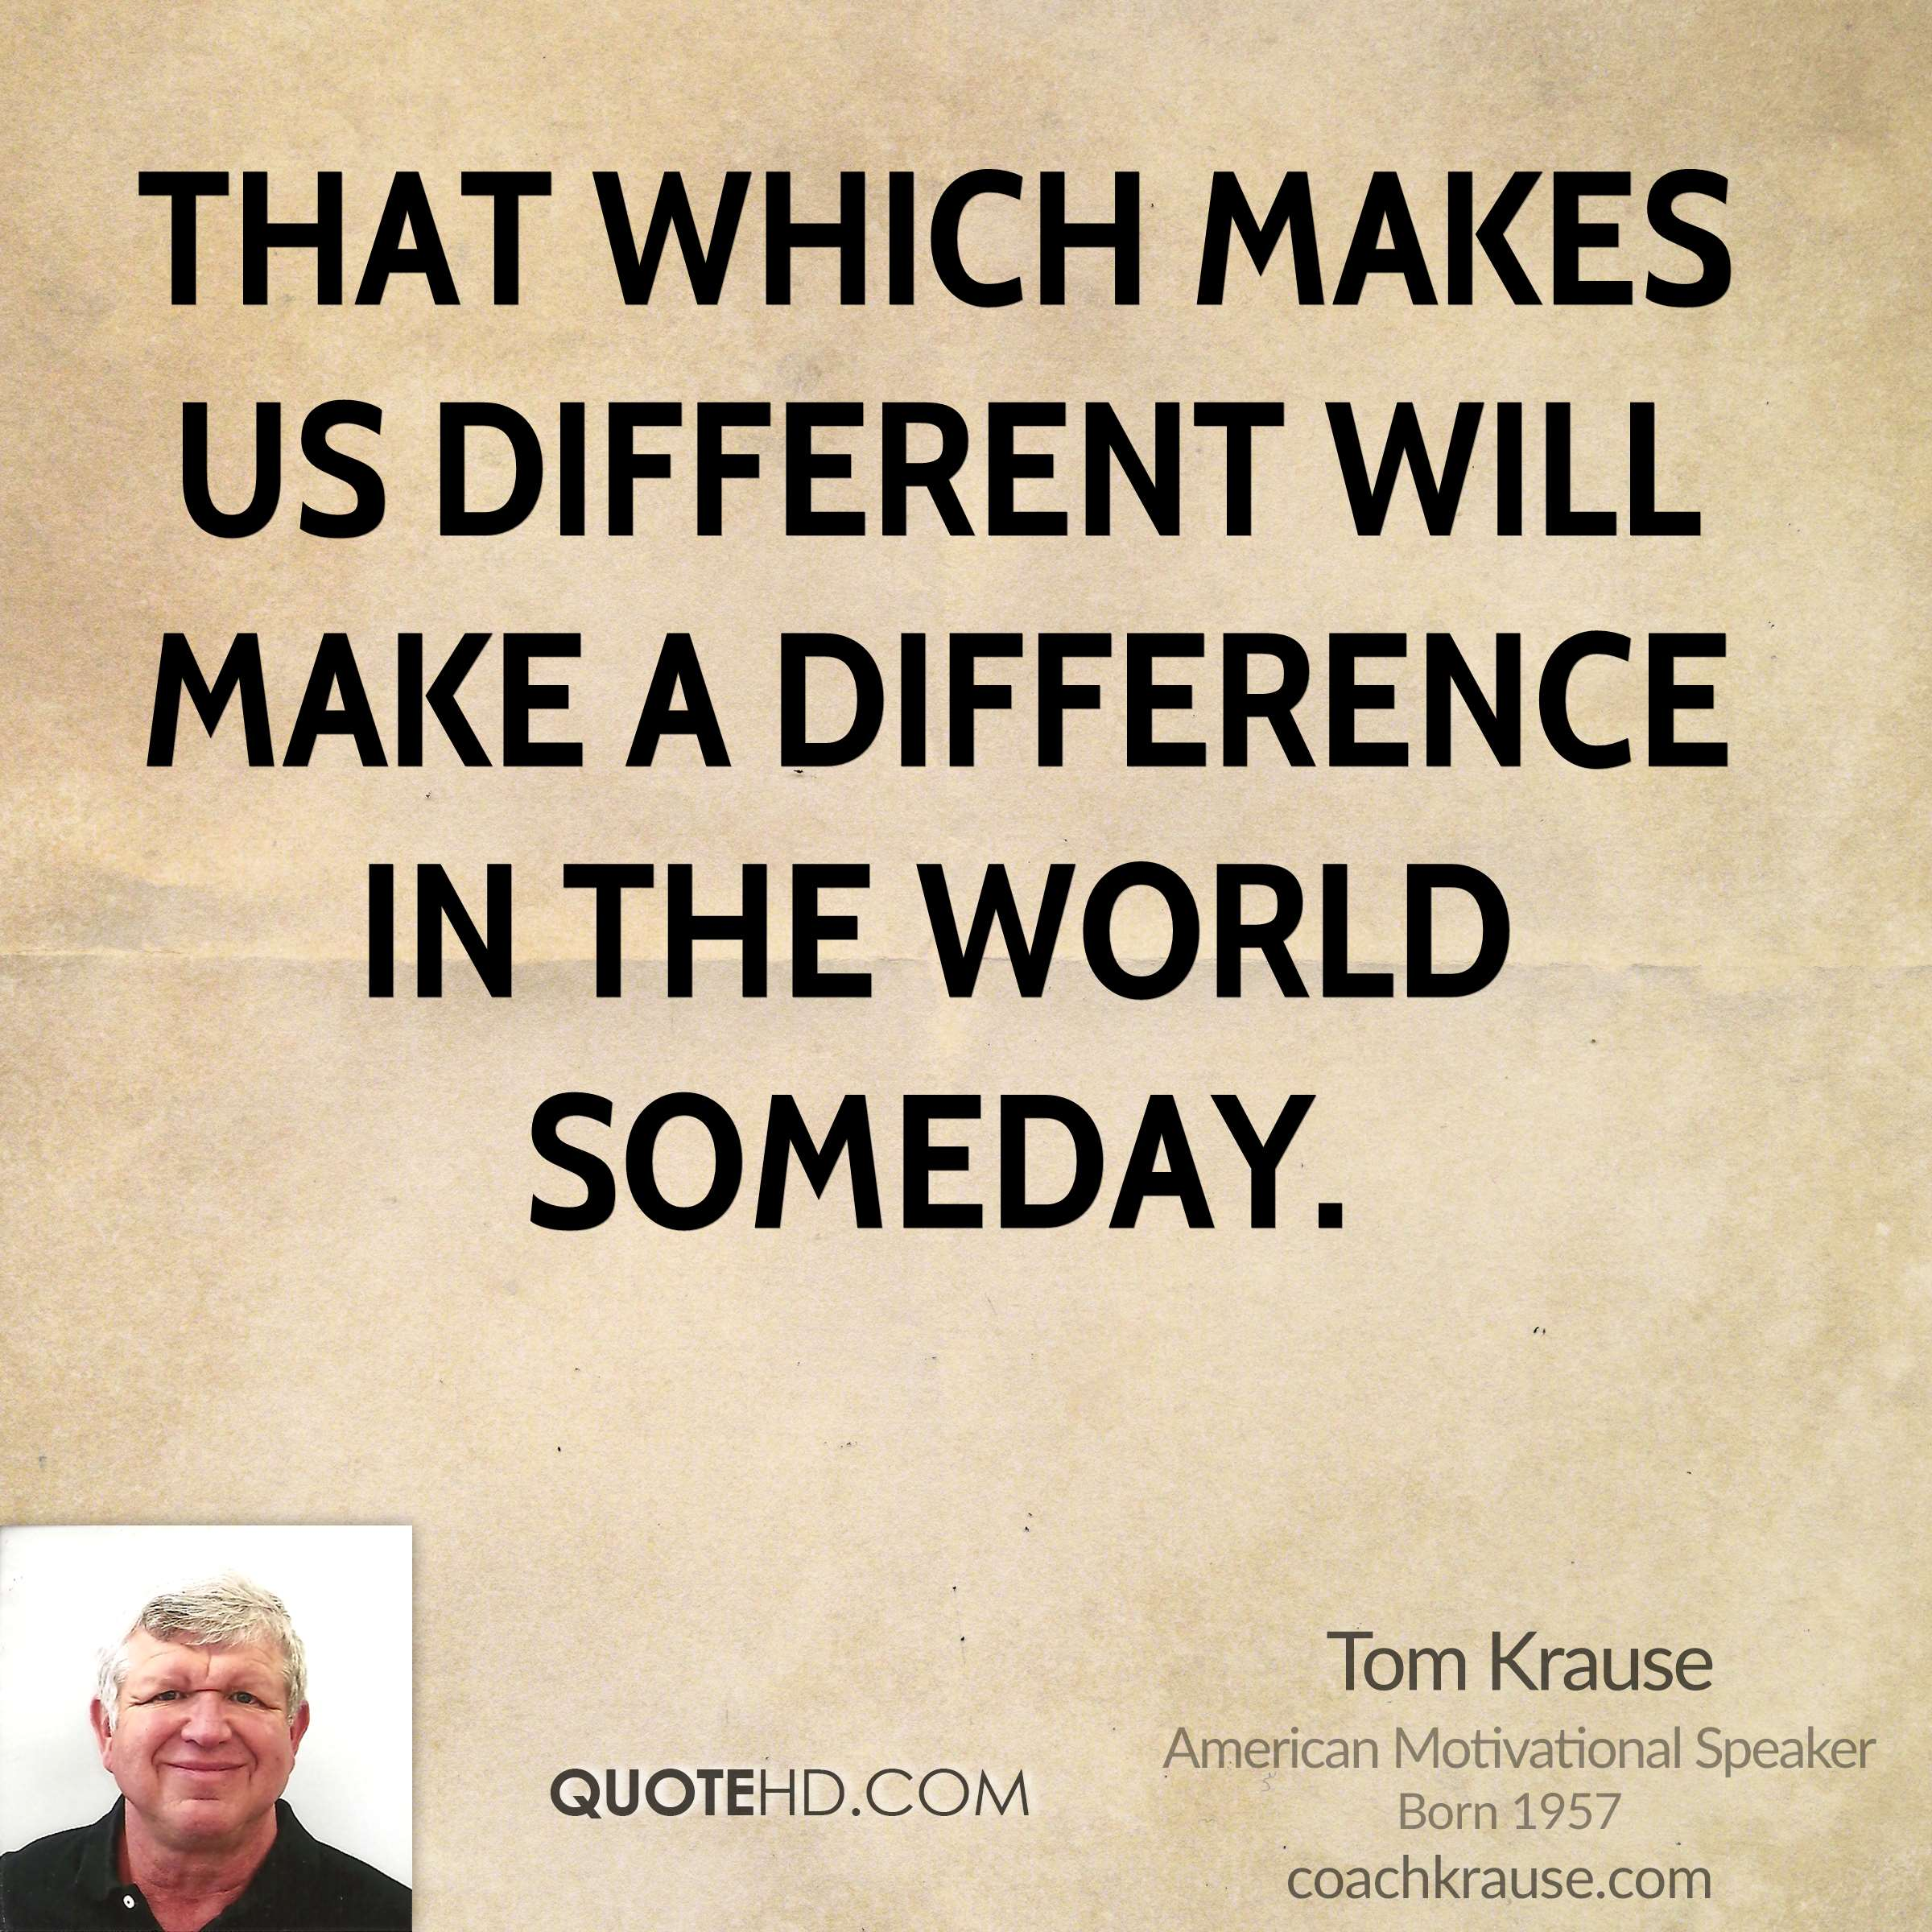 That which makes us DIFFERENT will make a DIFFERENCE in the world someday.